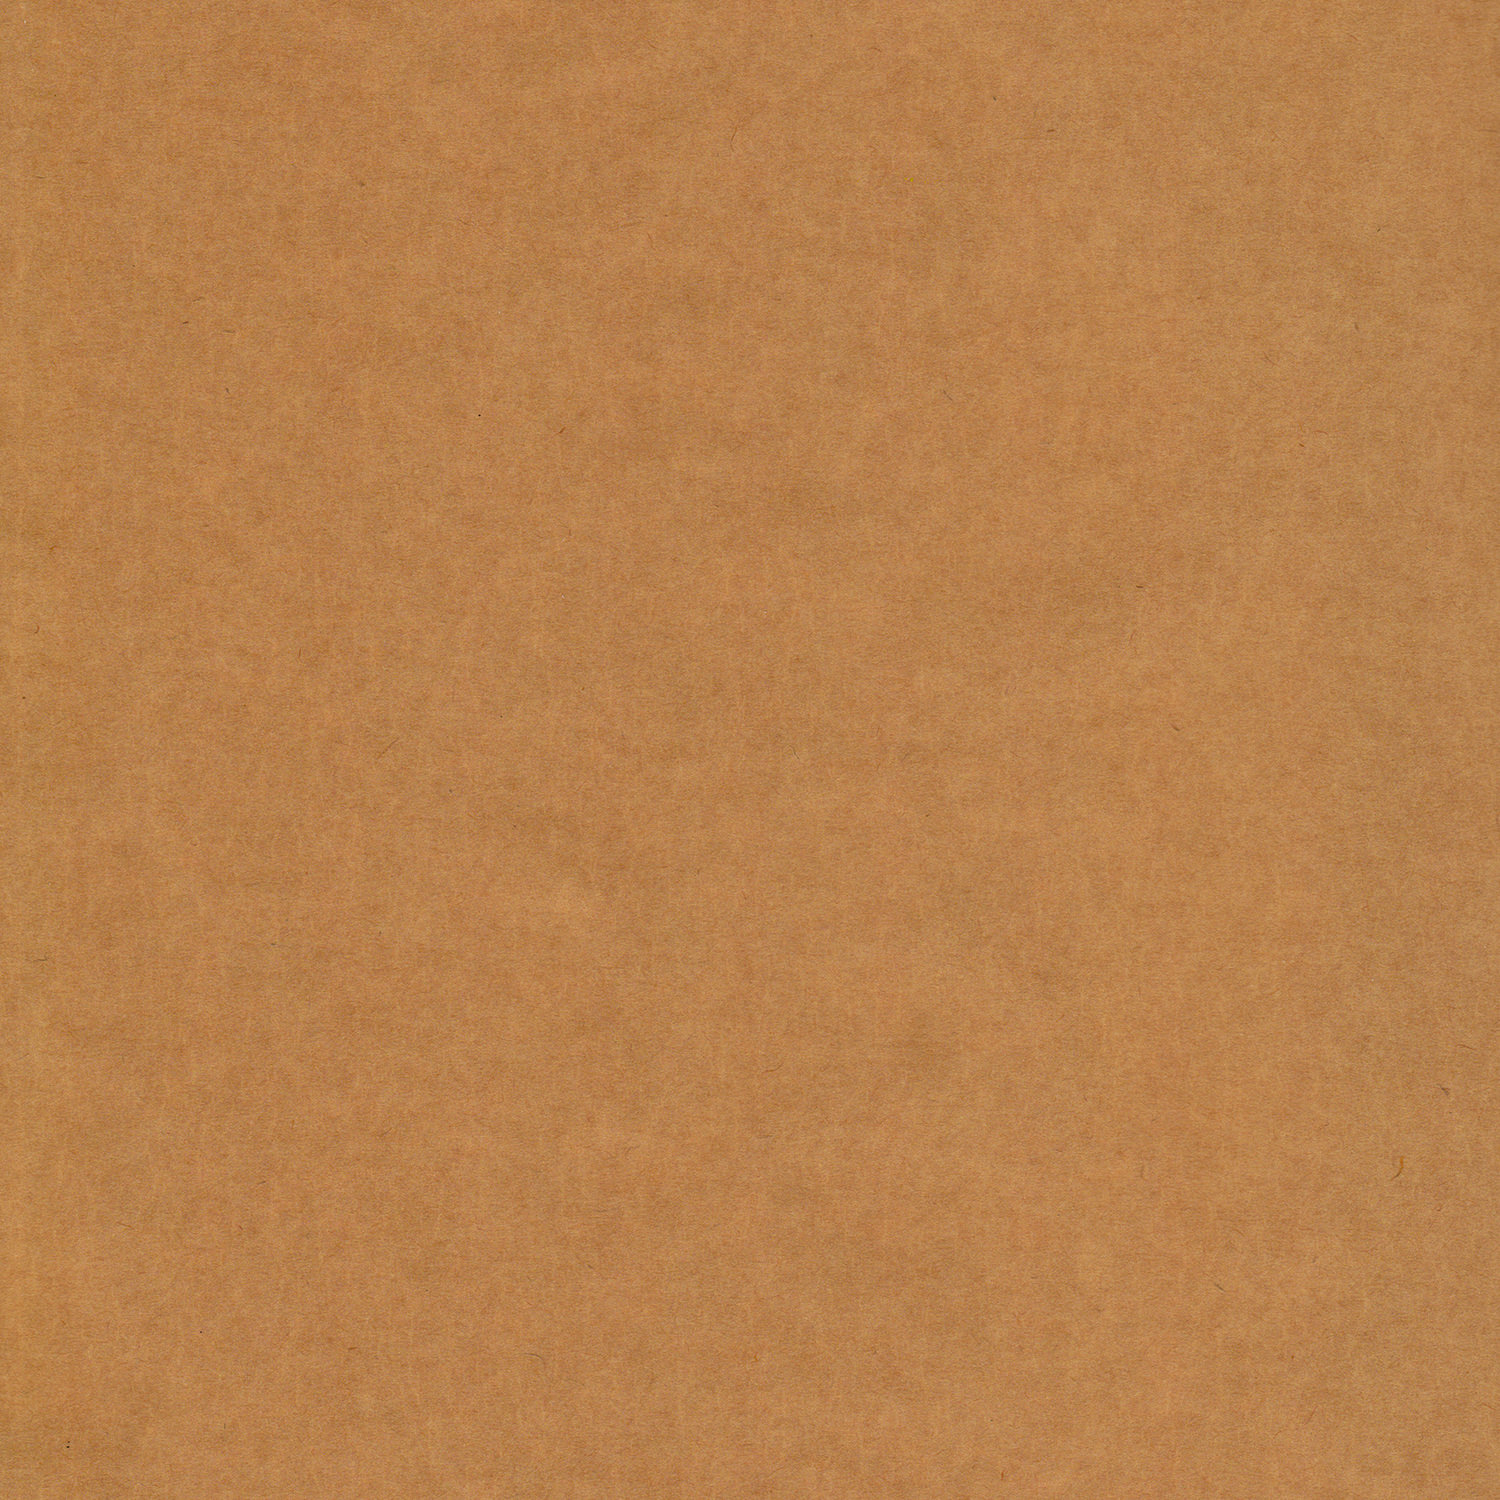 Buffalo Board  Uncoated brown kraft board with visible fibres. Available in 225-386gsm